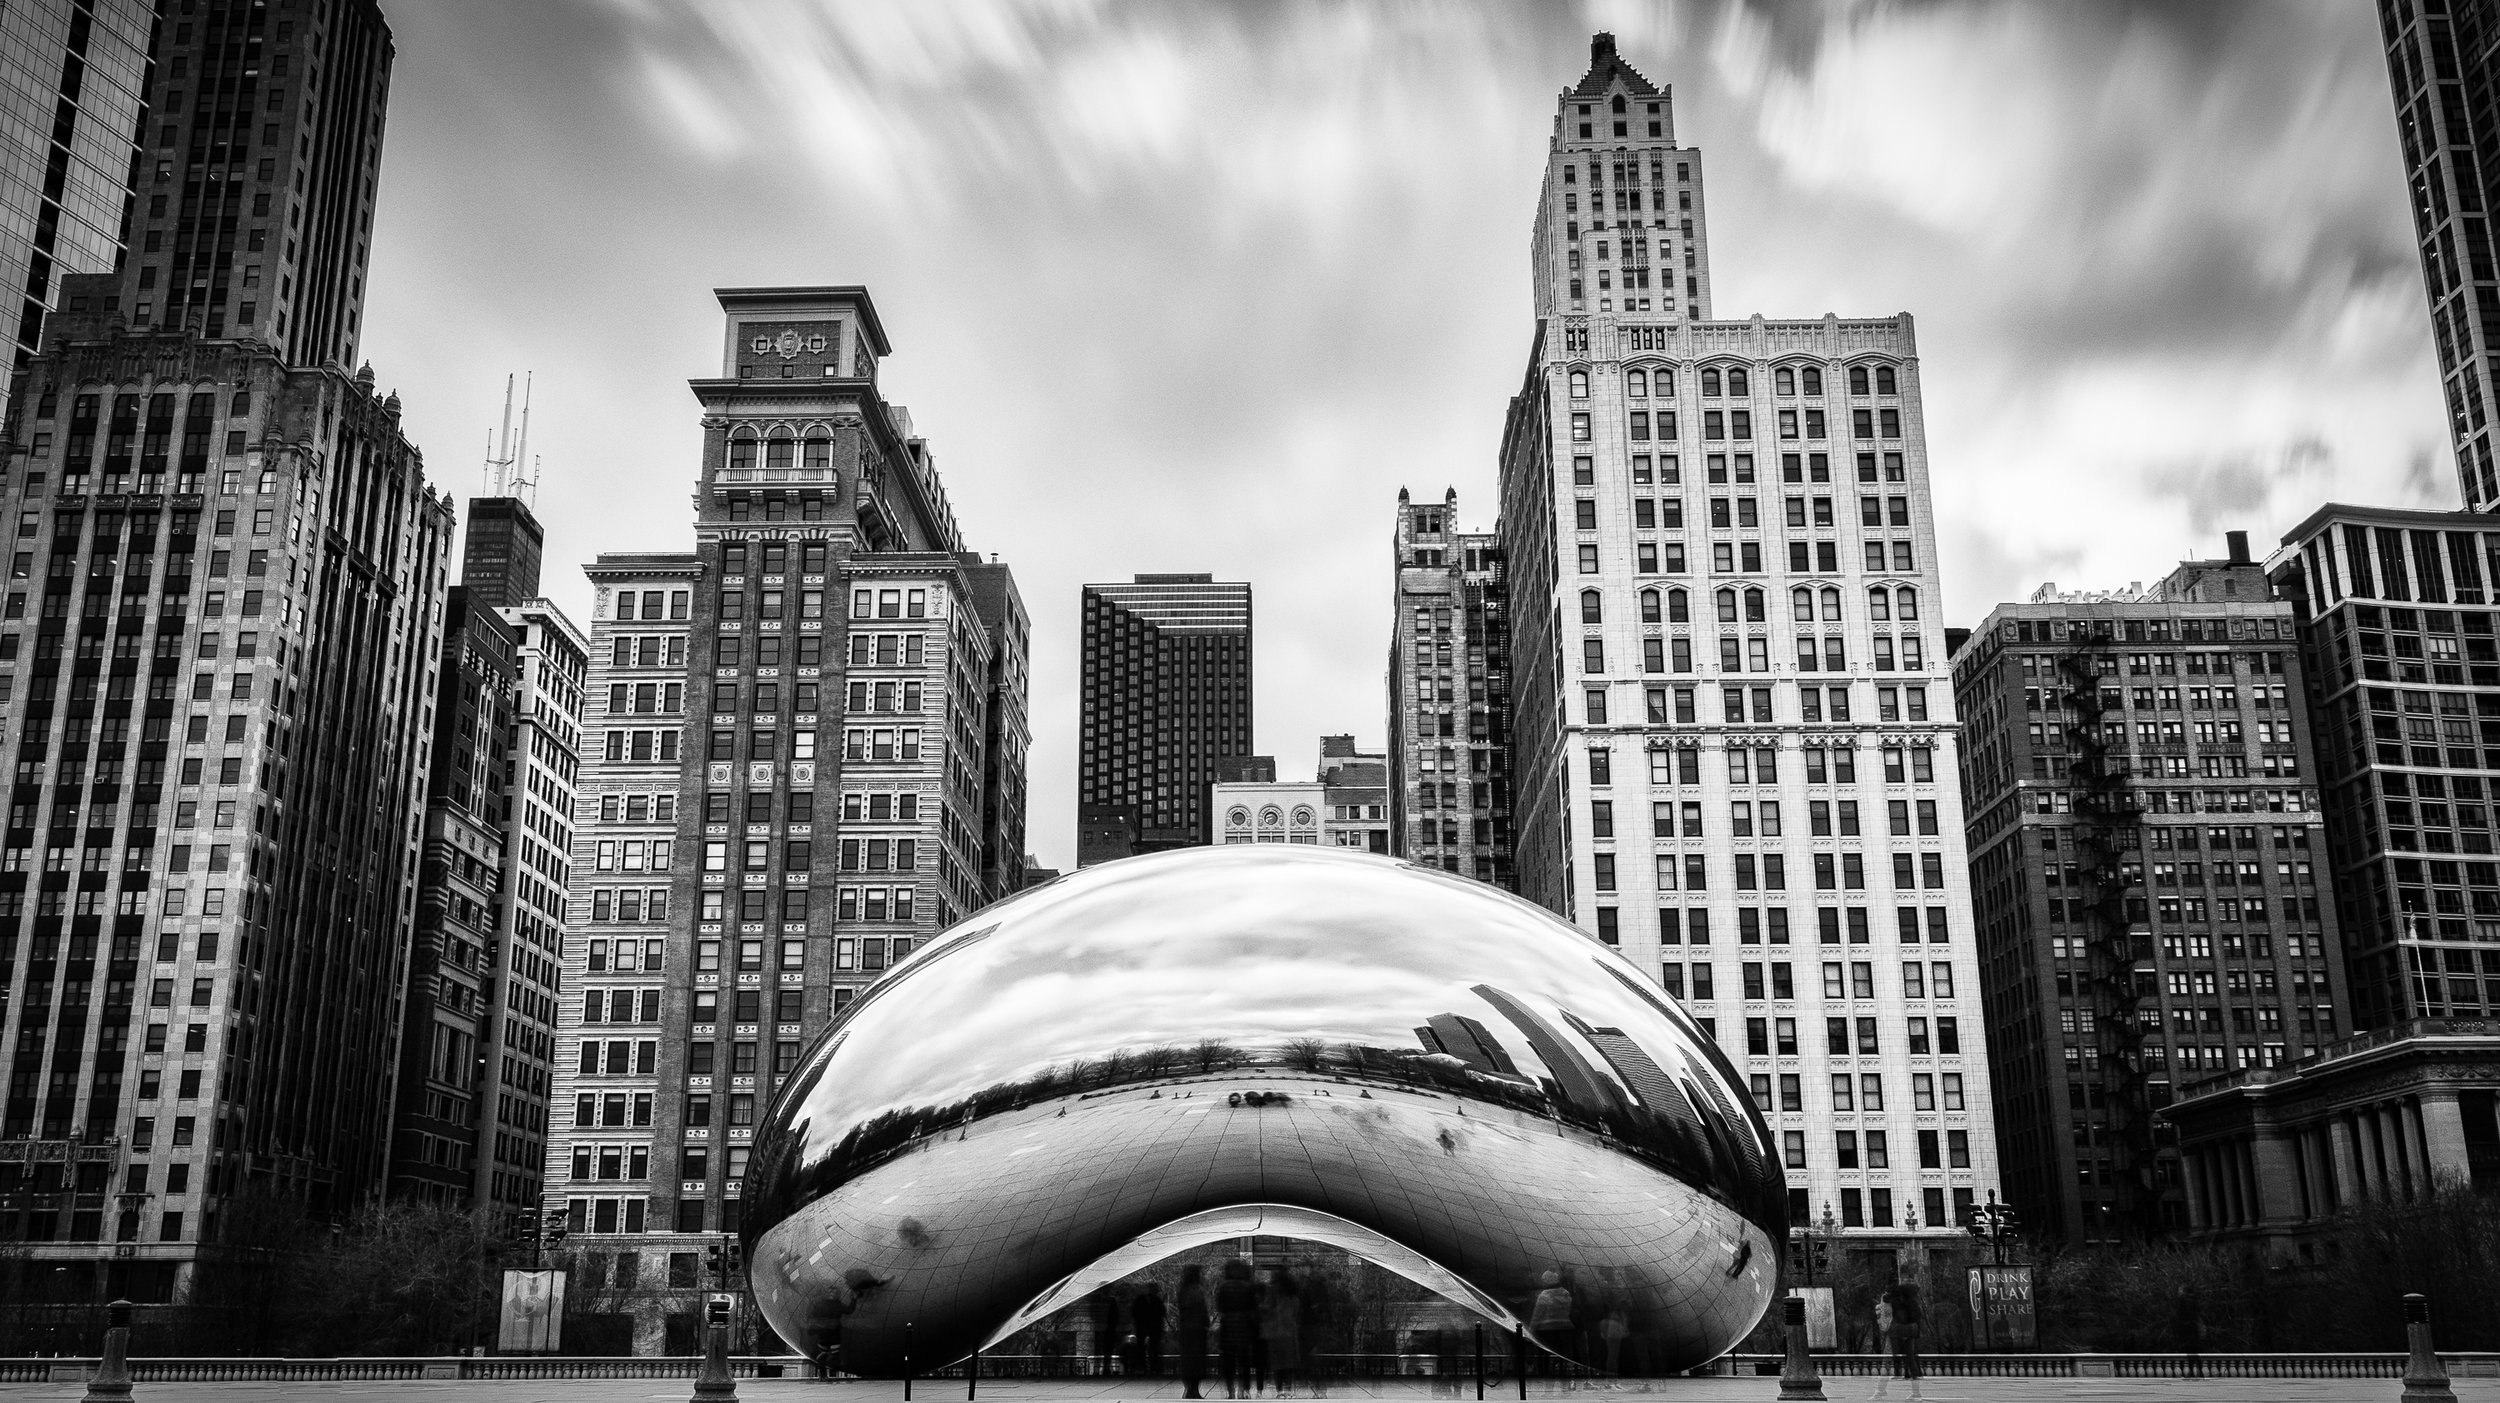 Cloud Gate | Millenium Park, Chicago, IL. | March. 2018